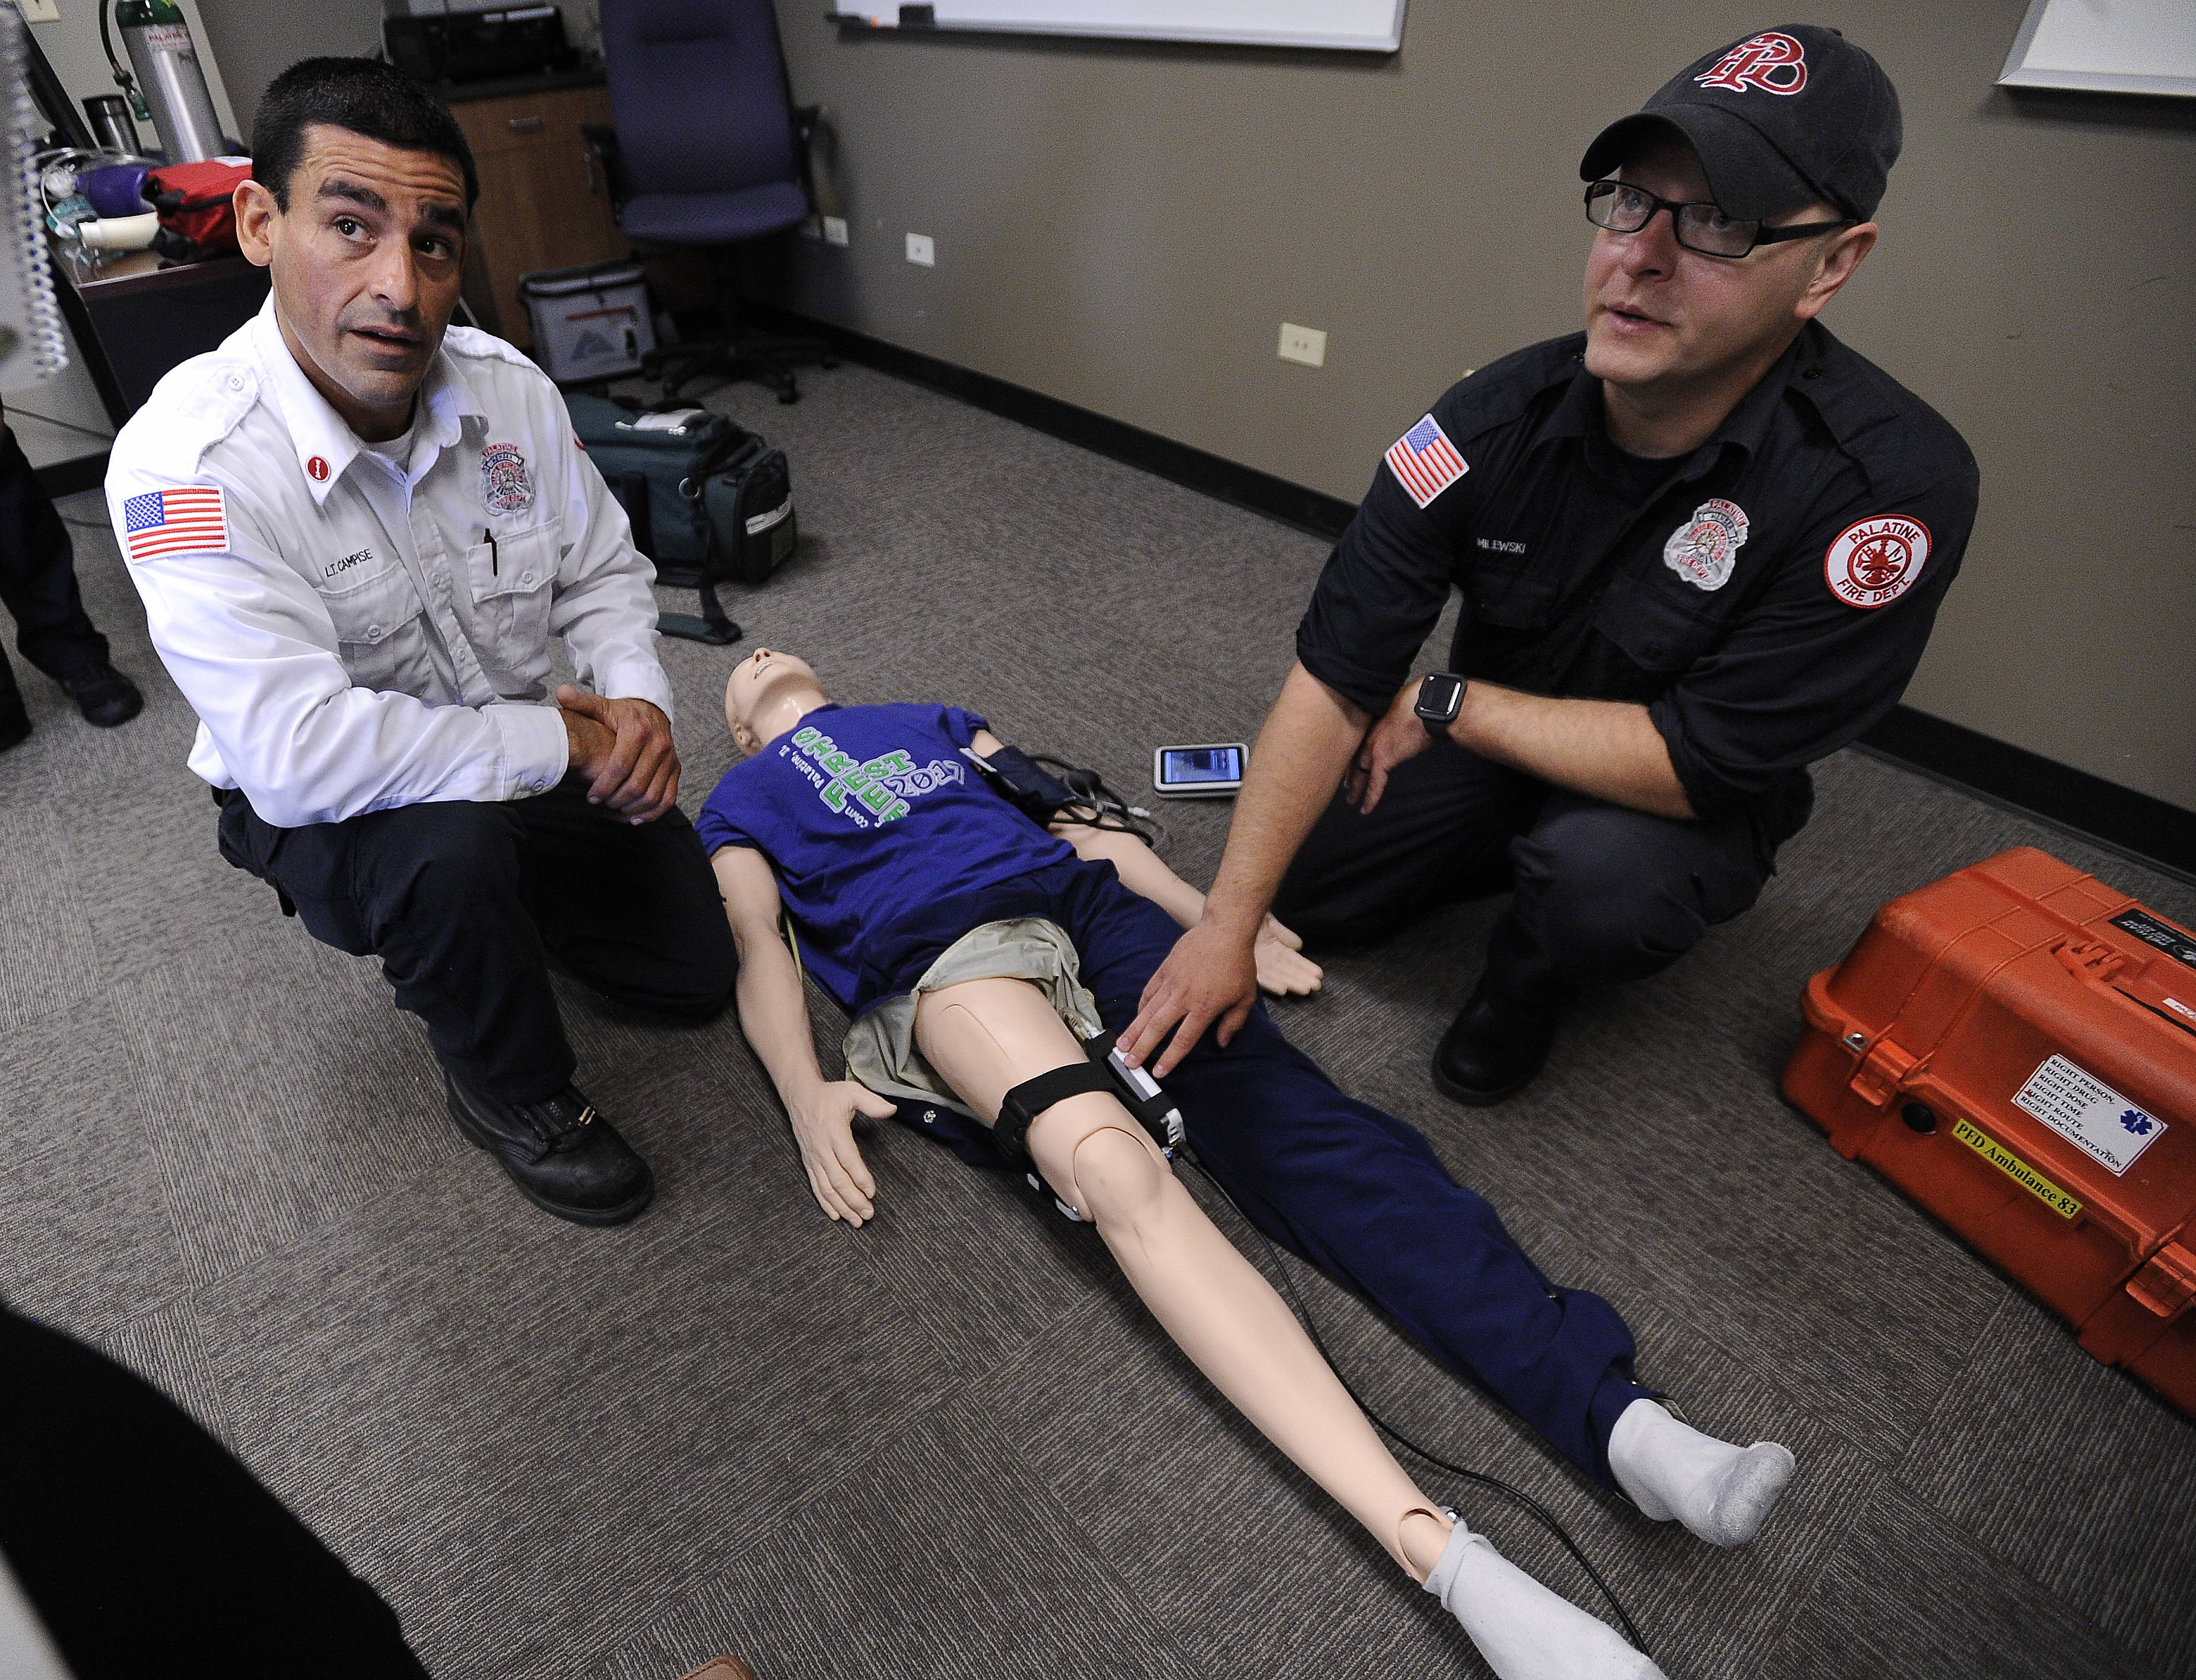 Palatine Fire Department Lt. Marc Campise and Firefighter/Paramedic Andrew Milewski show off the department's new, high-tech training manikin on Tuesday. The manikin can be adjusted to present trainees with a variety of situations.